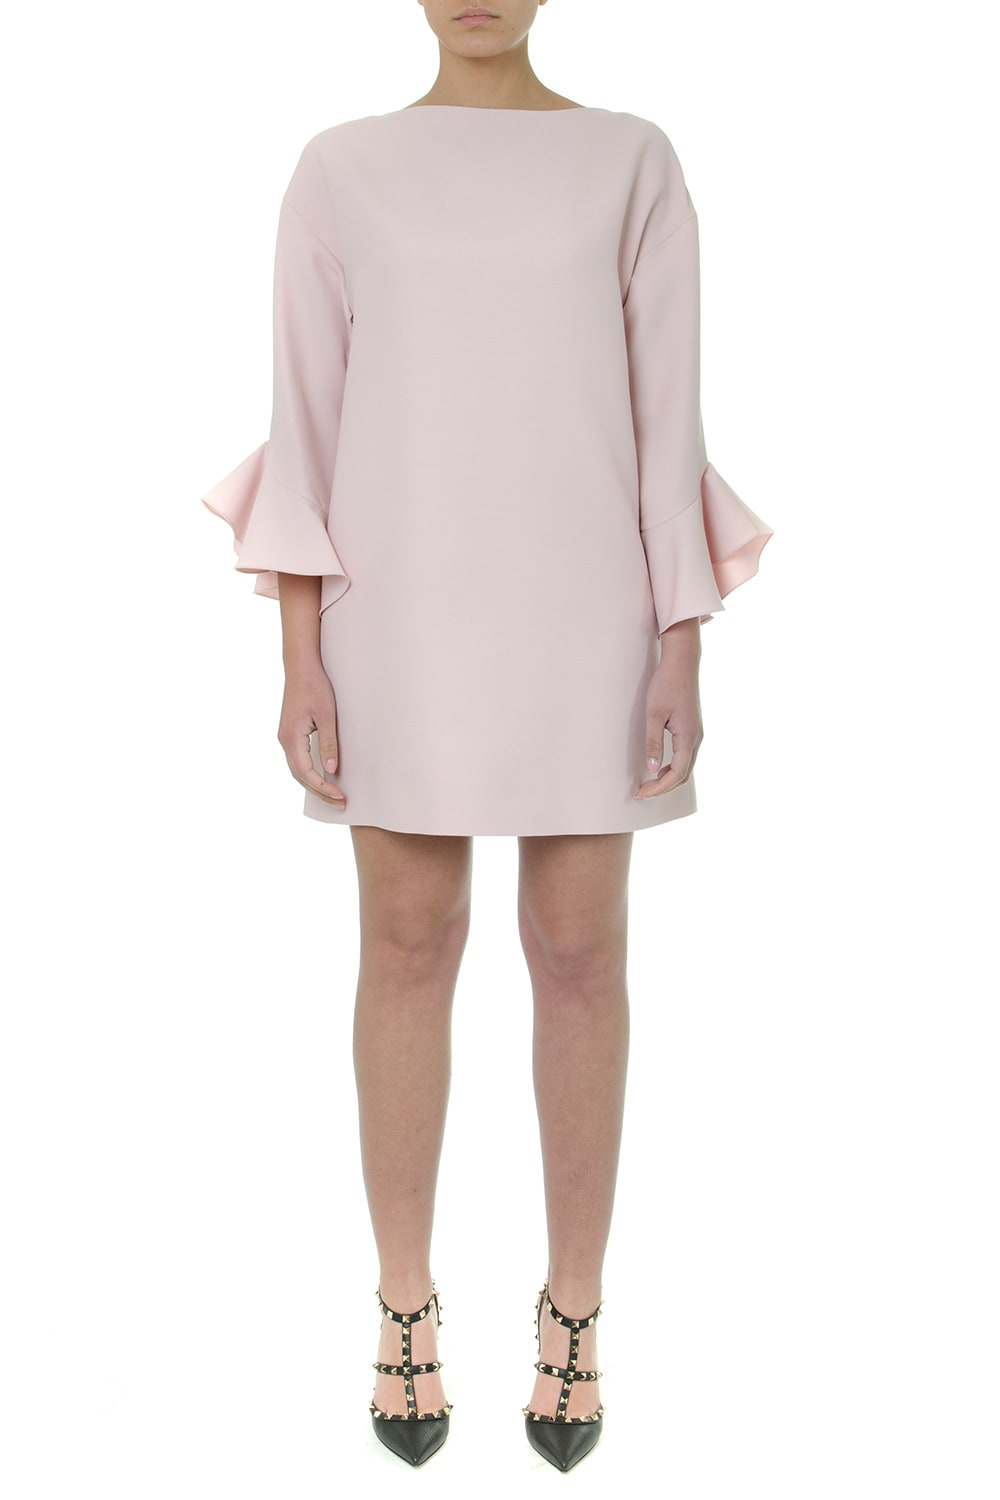 Valentino Light Pink Wool Ruffled Short Dress